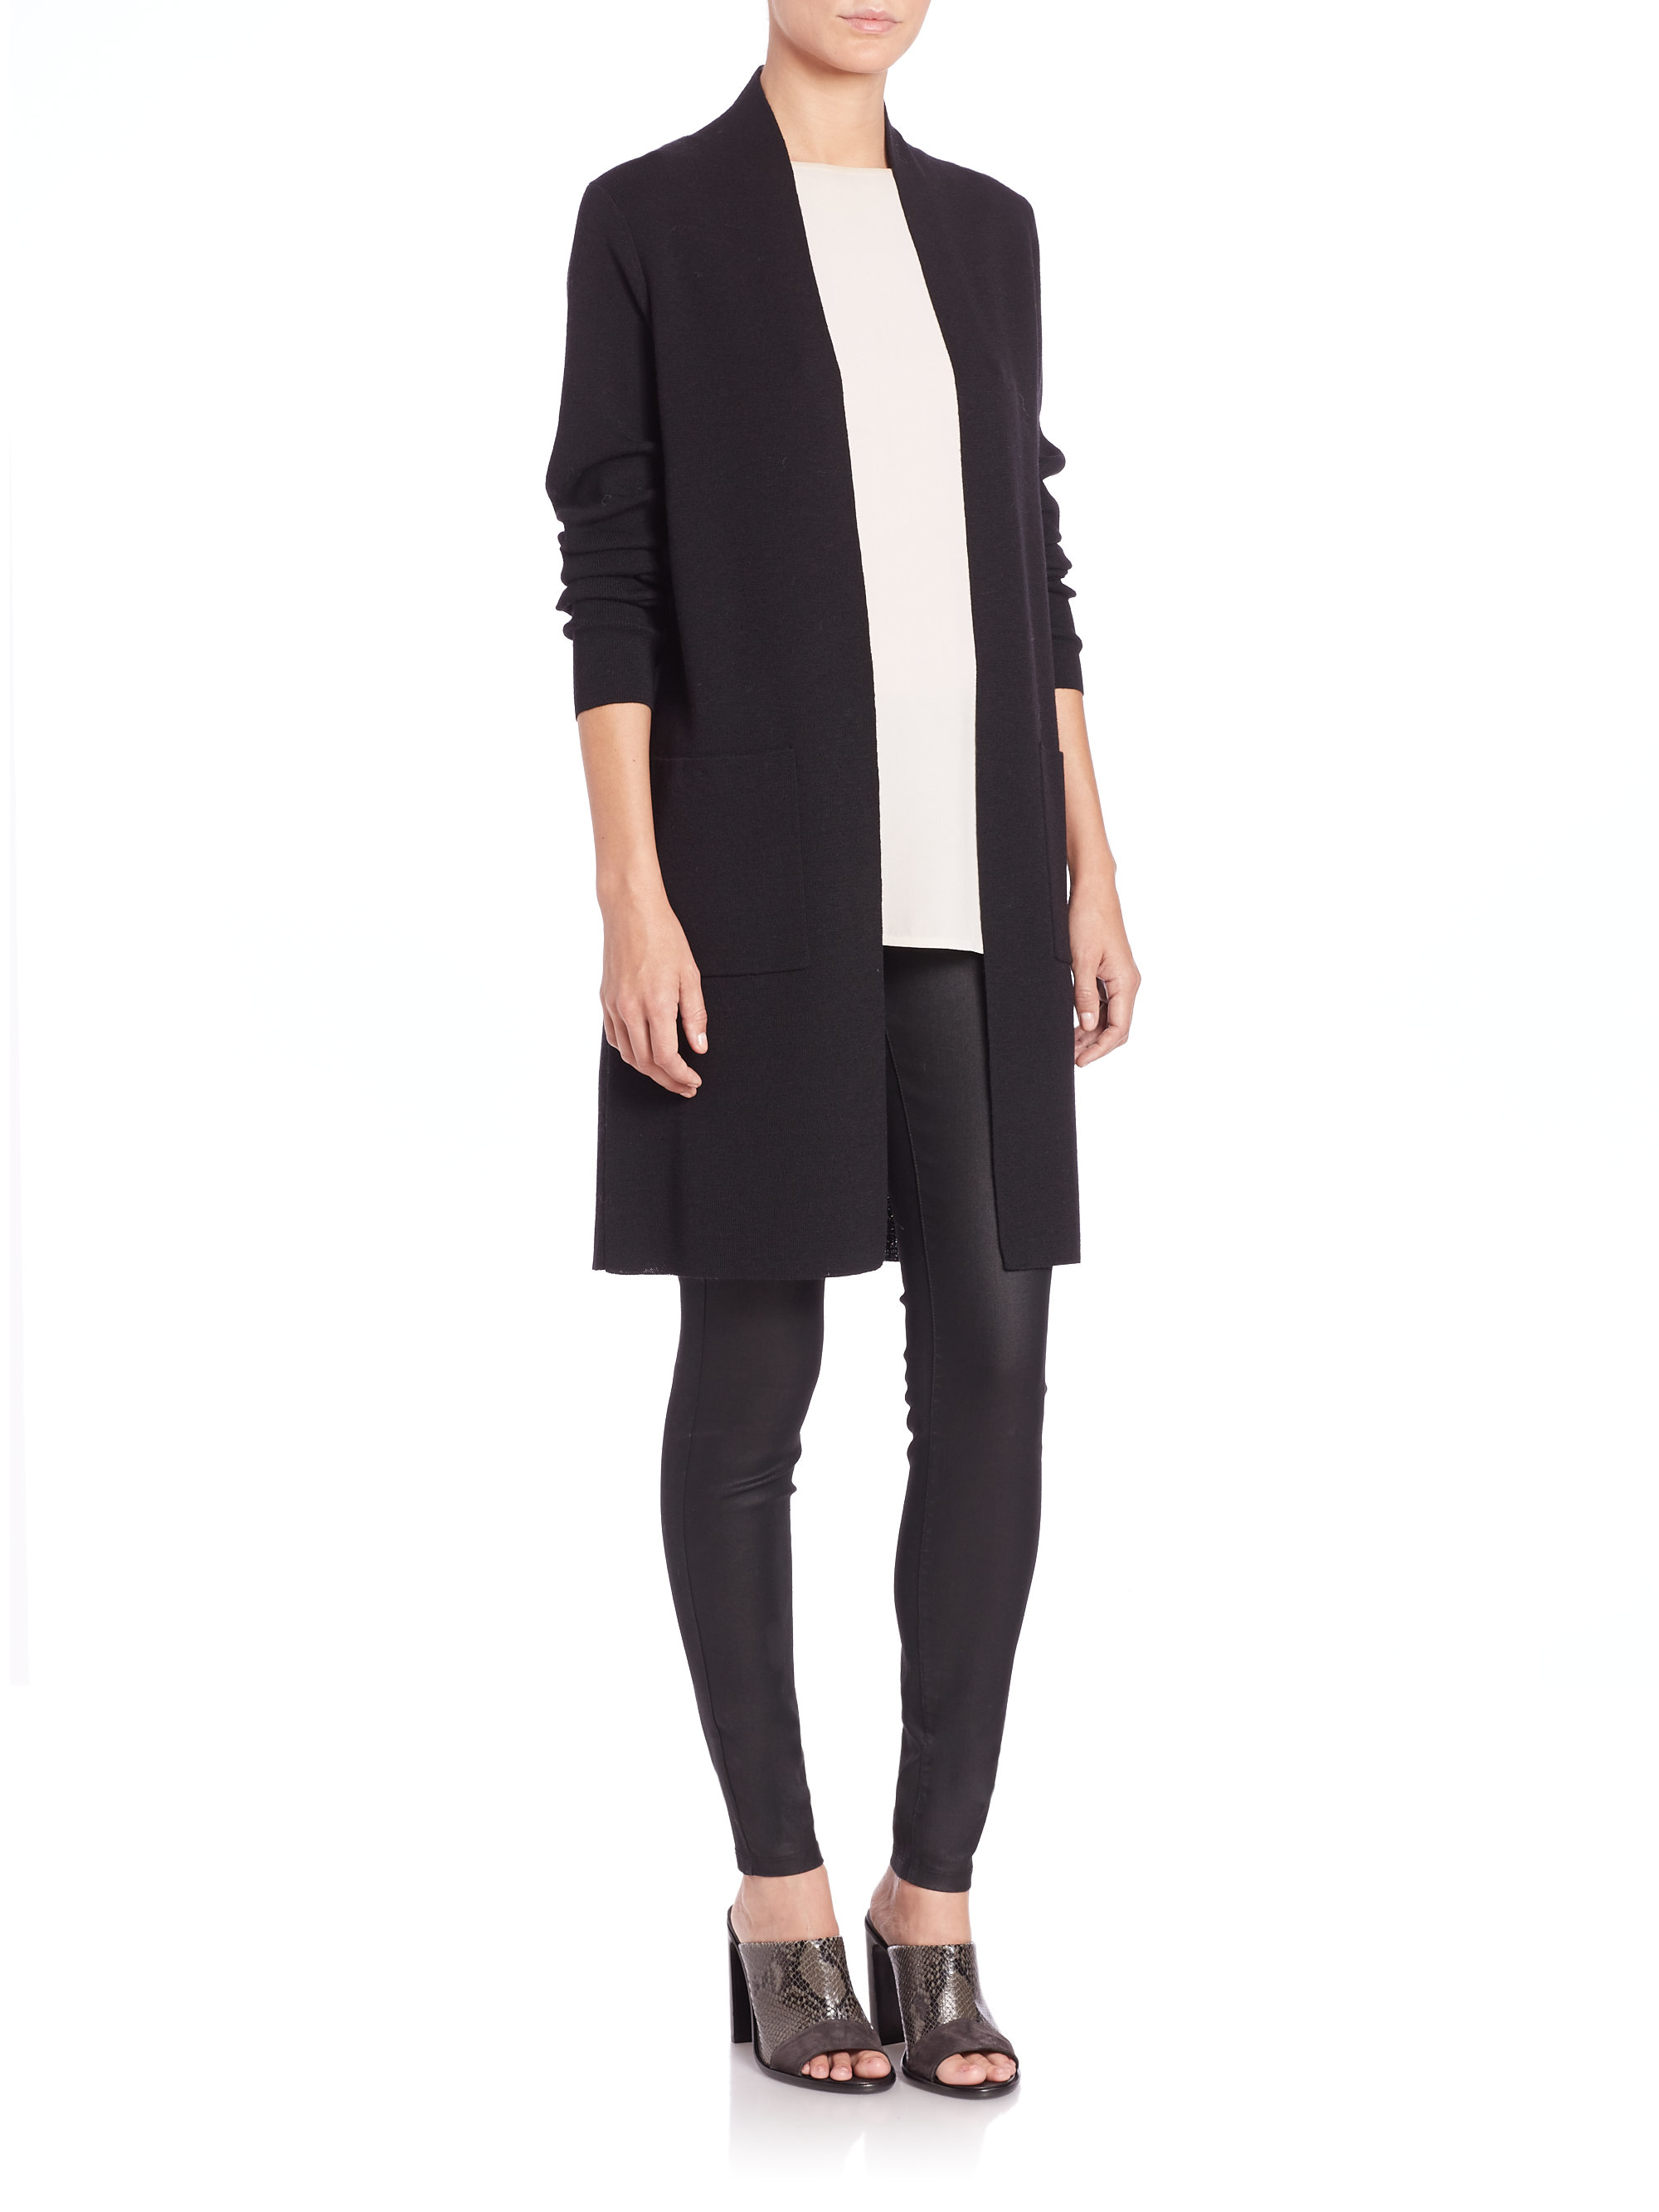 Our women's woolen cardigans collection offer a range of great styles and colors all made with natural fabrics such as cashmere, pure Wool, Silk & Cotton. Browse a broad selection of high-quality Wool cardigan sweaters, and shop securely on WoolOvers US.